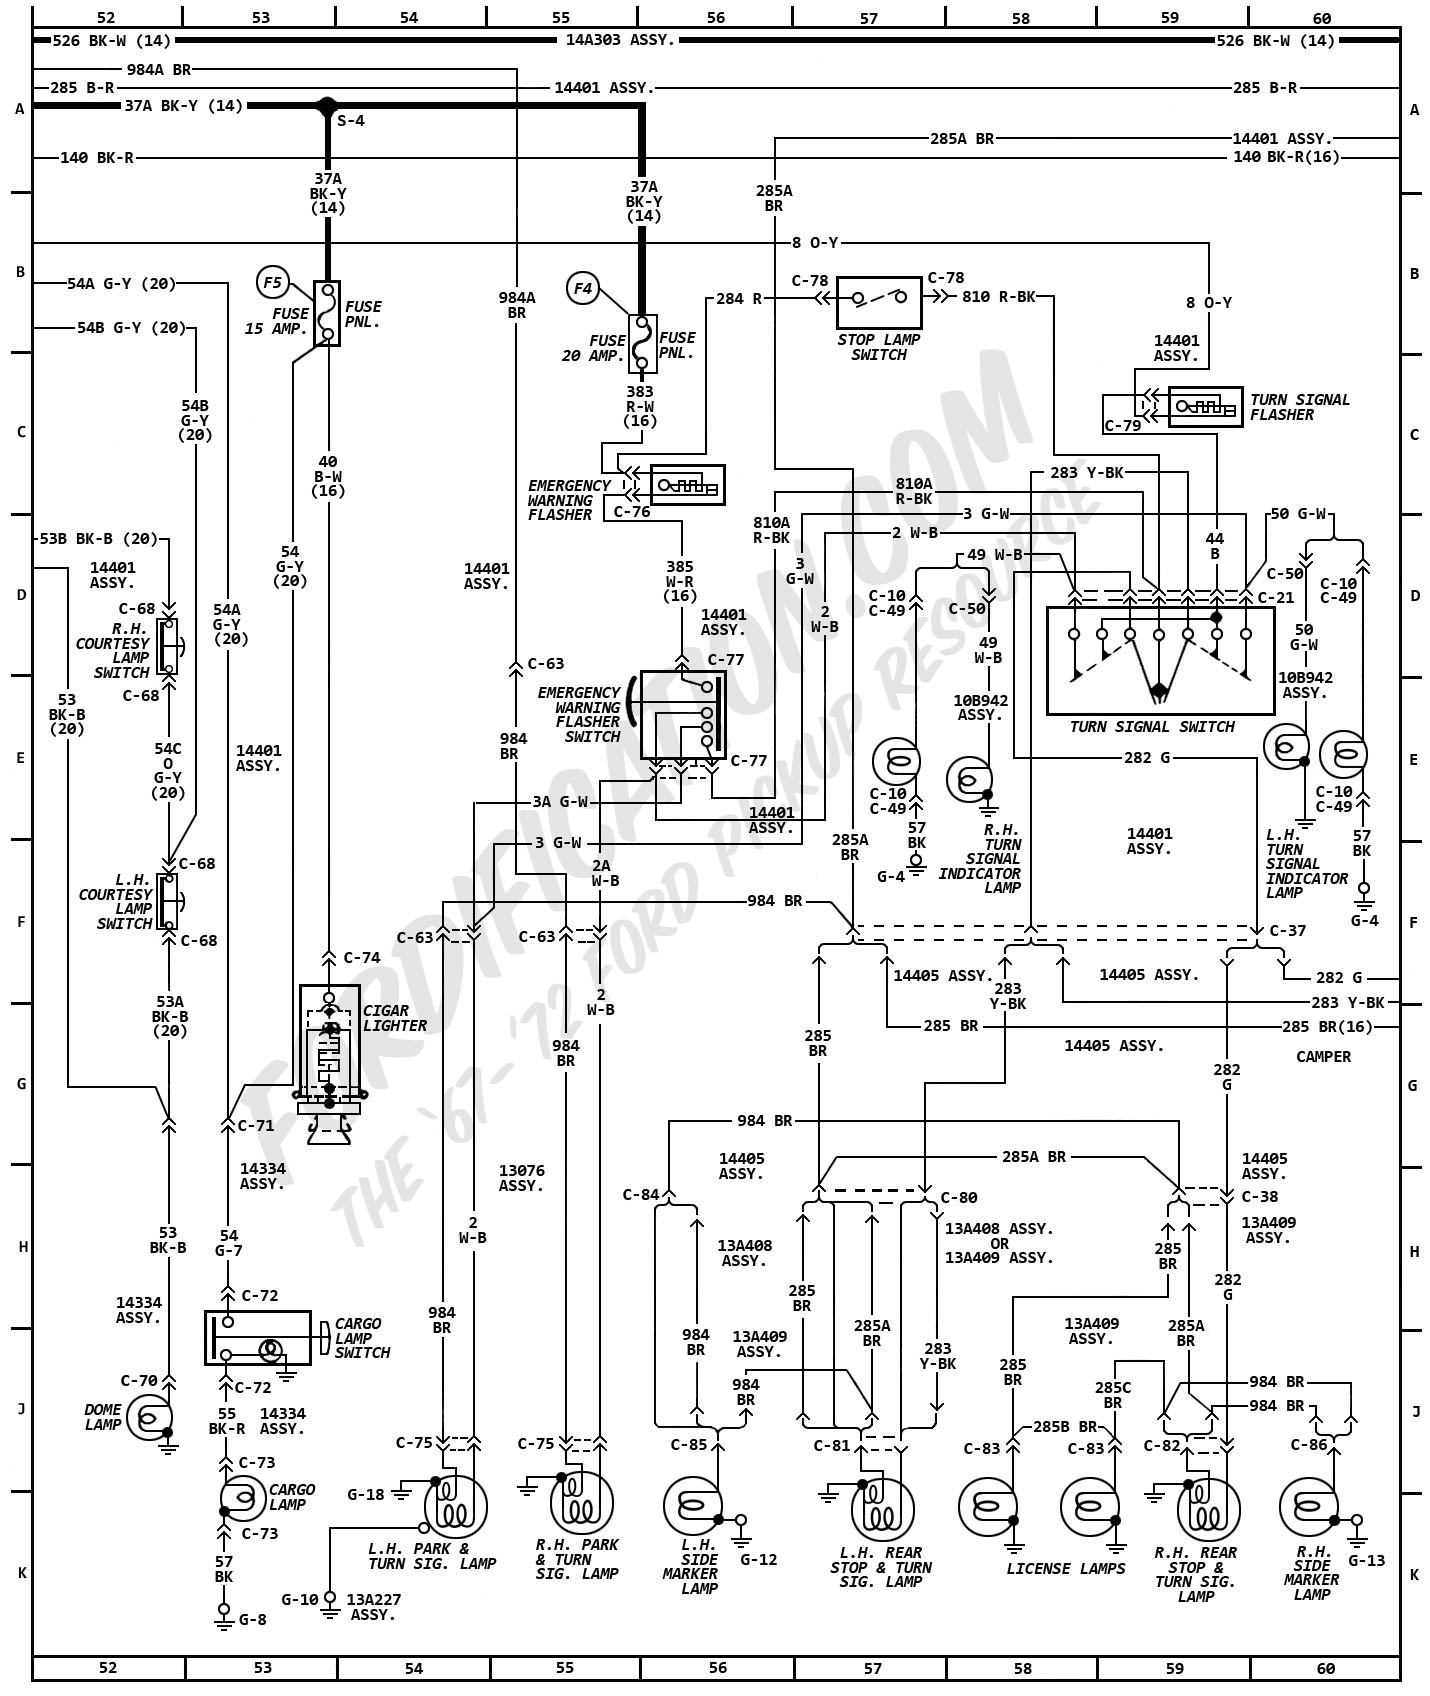 1972MasterWiring_06 1972 ford truck wiring diagrams fordification com 72 ford f100 wiring diagram at honlapkeszites.co